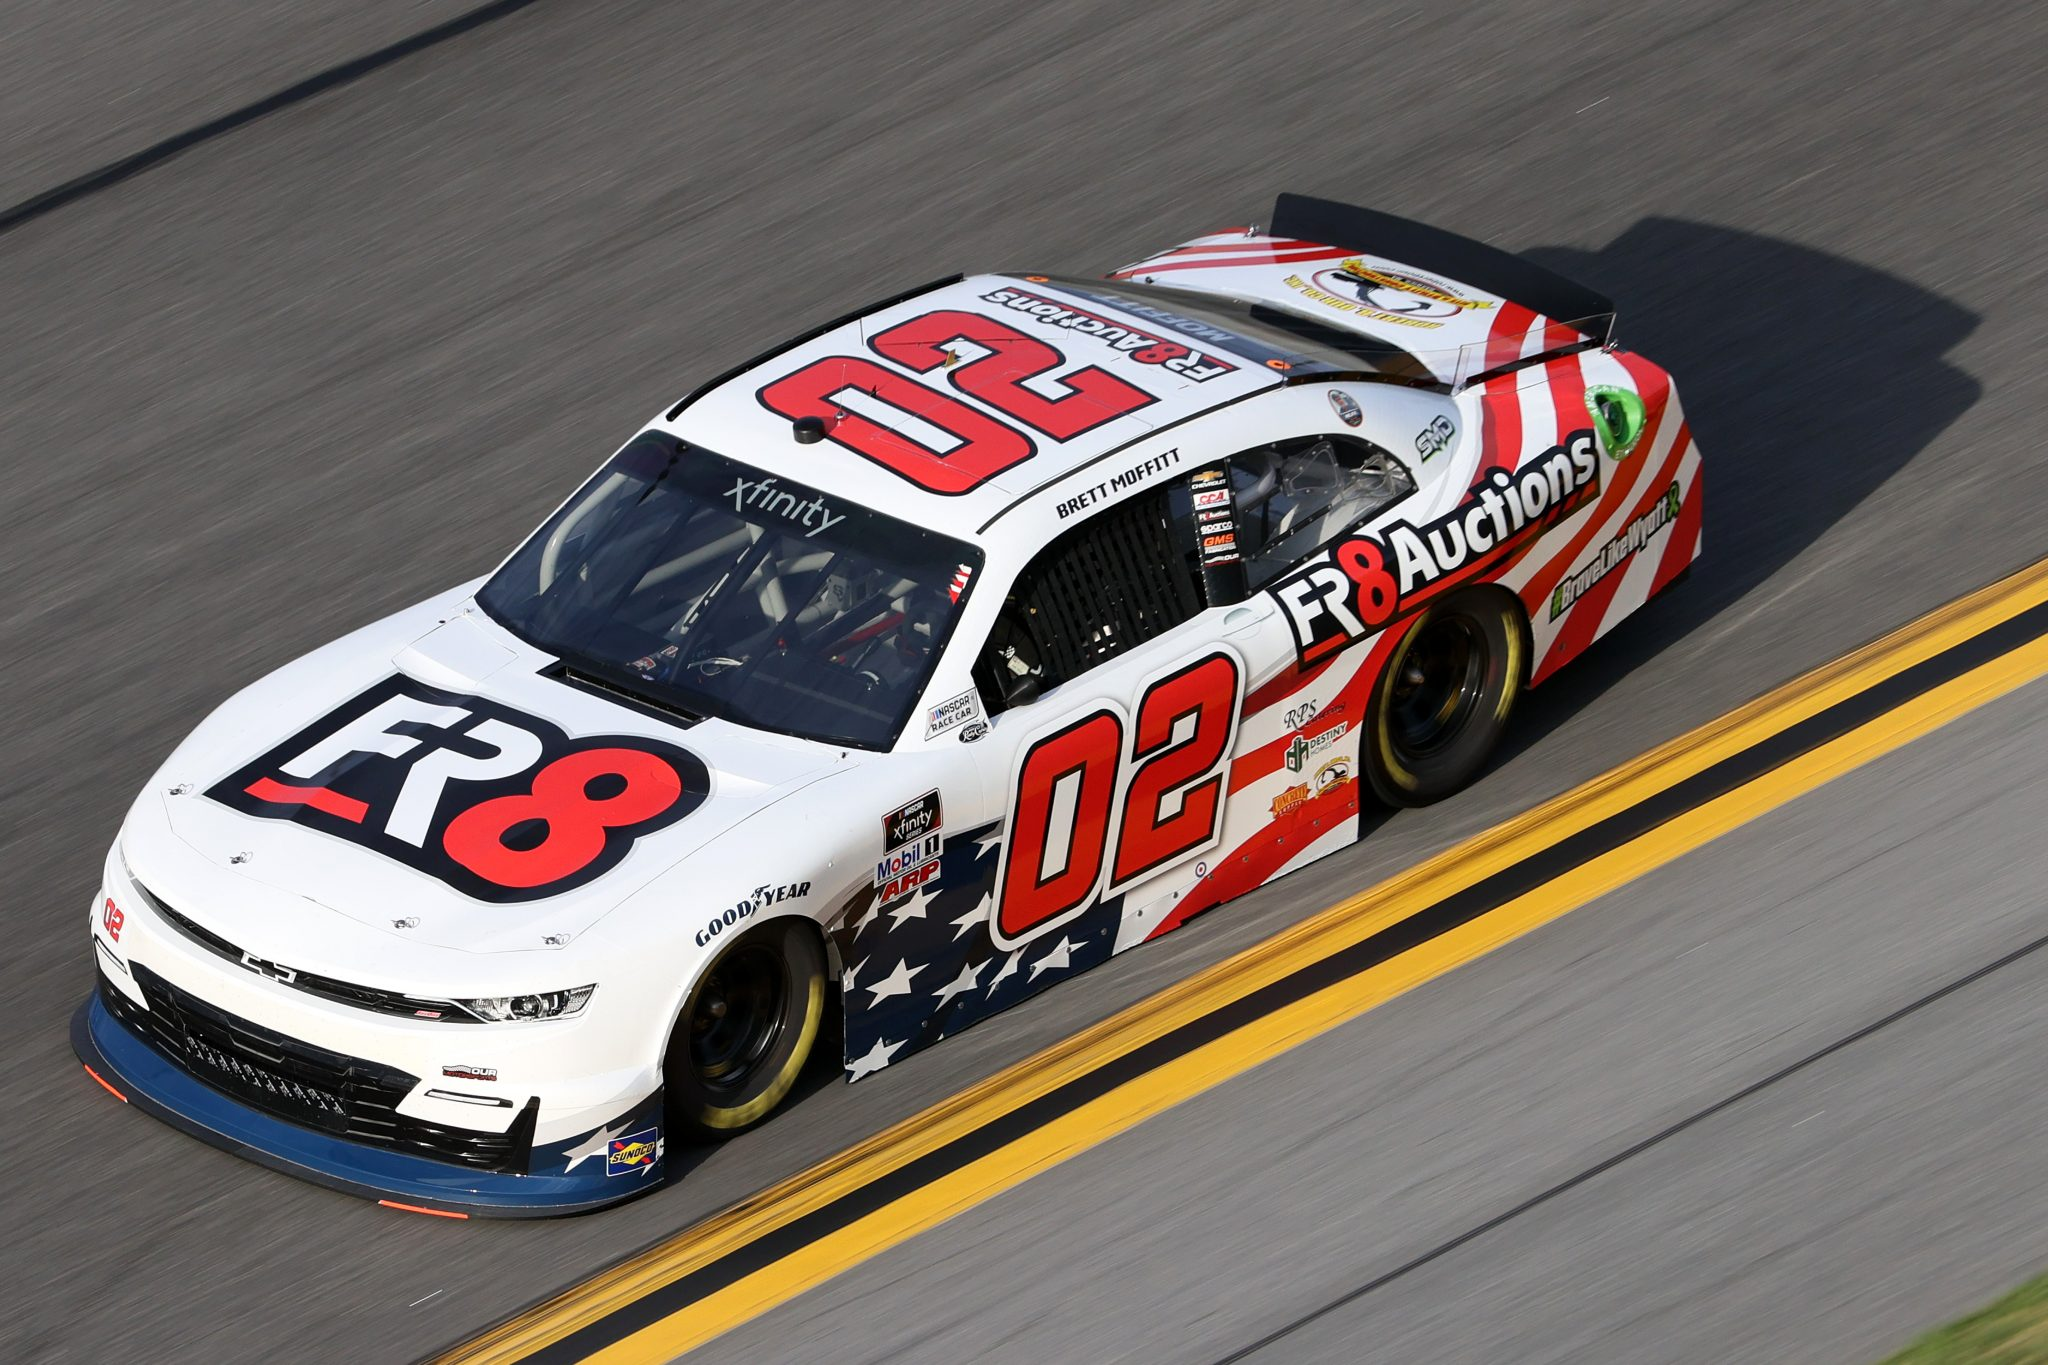 DAYTONA BEACH, FLORIDA - FEBRUARY 12: Brett Moffitt, driver of the #02 Fr8Auctions Chevrolet, practices for the NASCAR Xfinity Series Beef. It's What's For Dinner. 300 at Daytona International Speedway on February 12, 2021 in Daytona Beach, Florida. (Photo by James Gilbert/Getty Images) | Getty Images